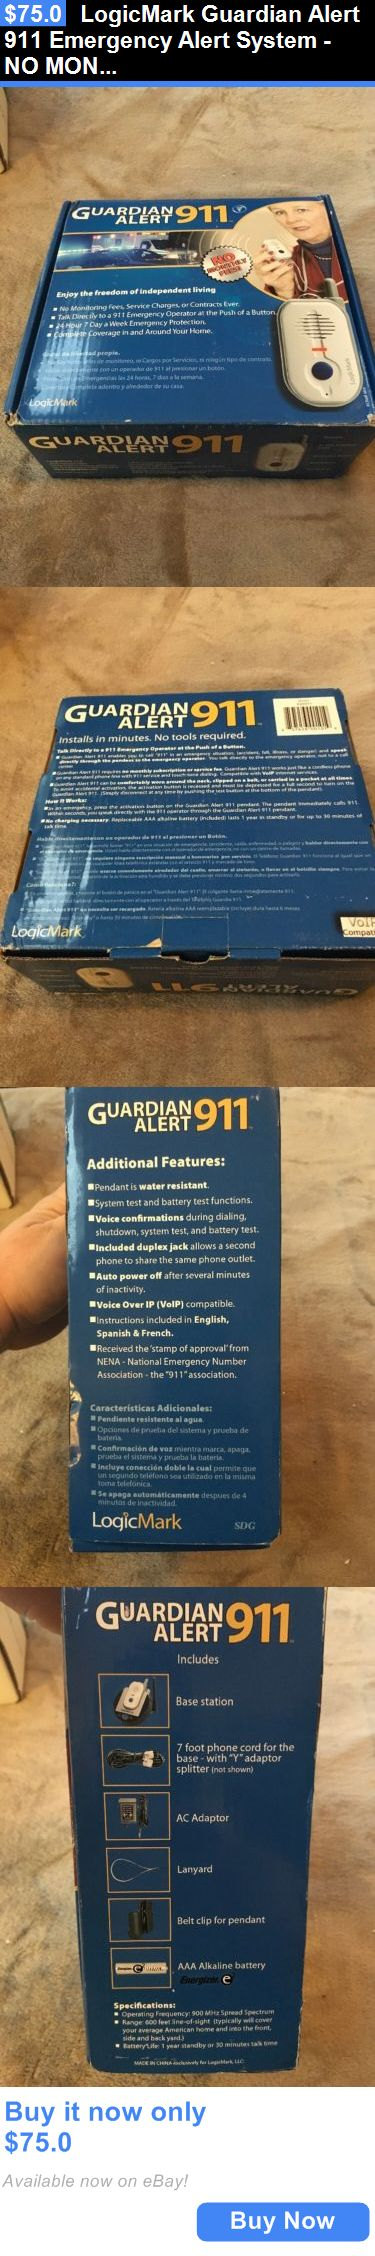 Emergency Alert Systems: Logicmark Guardian Alert 911 Emergency Alert System - No Monthly Fees , New, Fre BUY IT NOW ONLY: $75.0